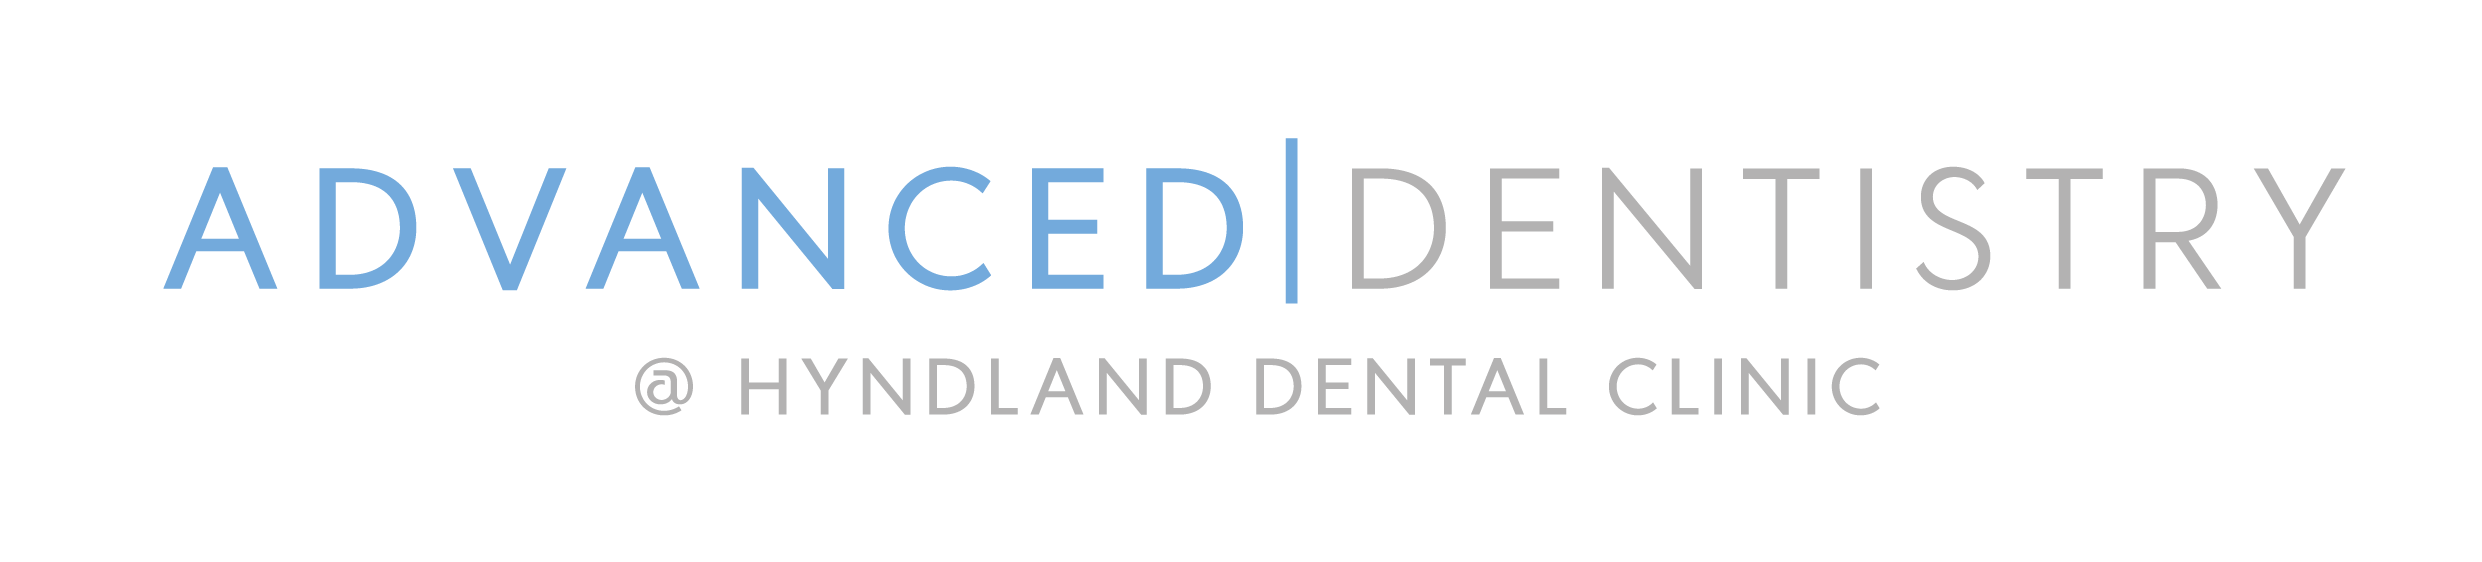 Philip Friel Advanced Dentistry - Logo